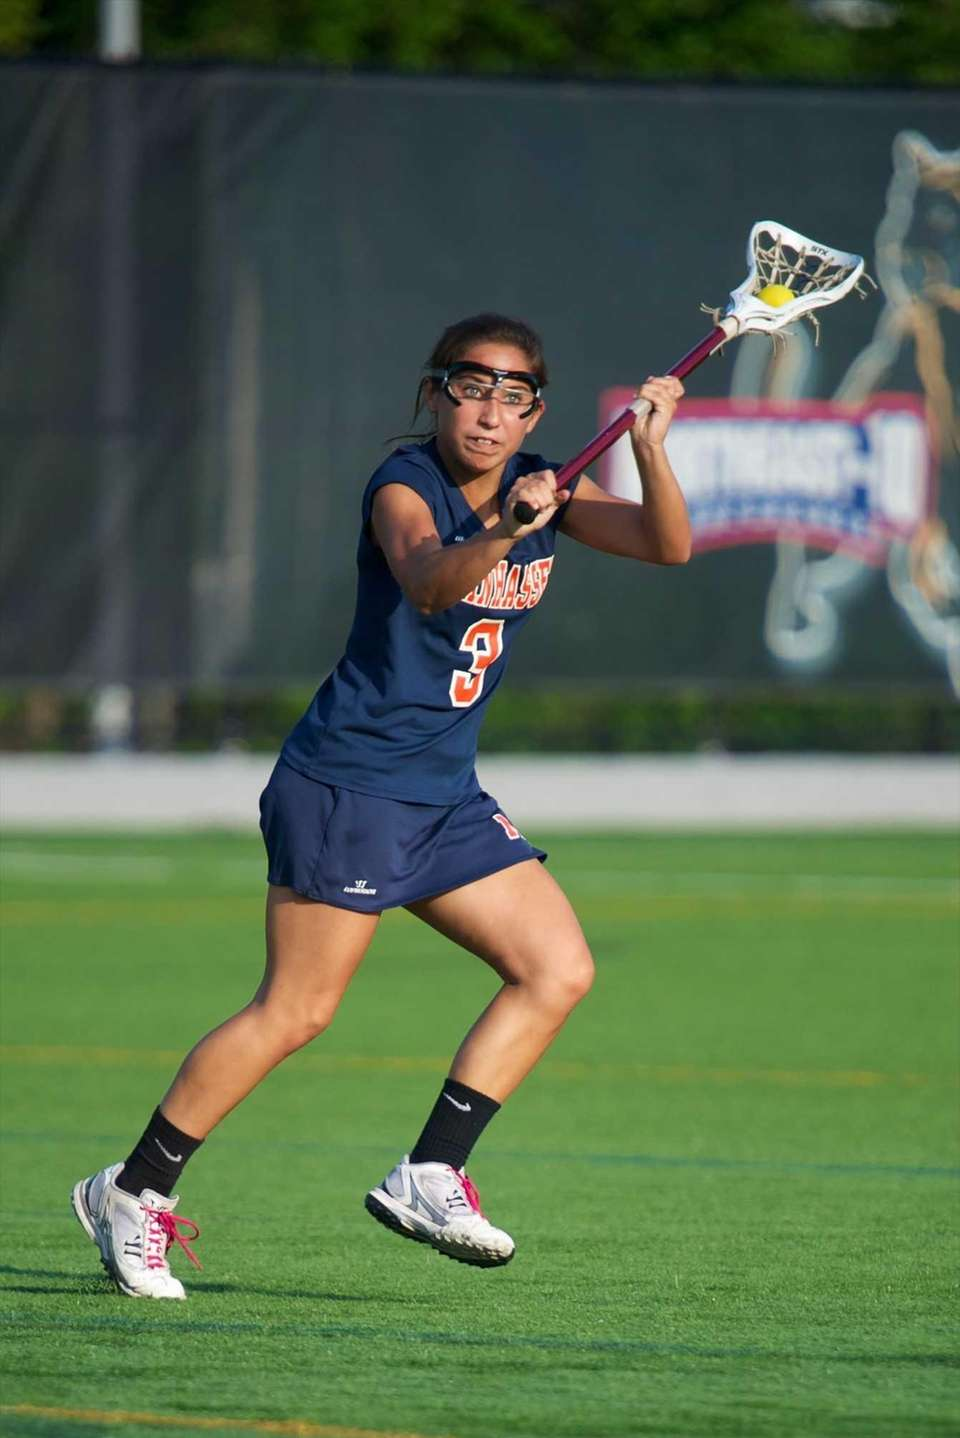 Manhasset Sarah Barcia passes the ball in a